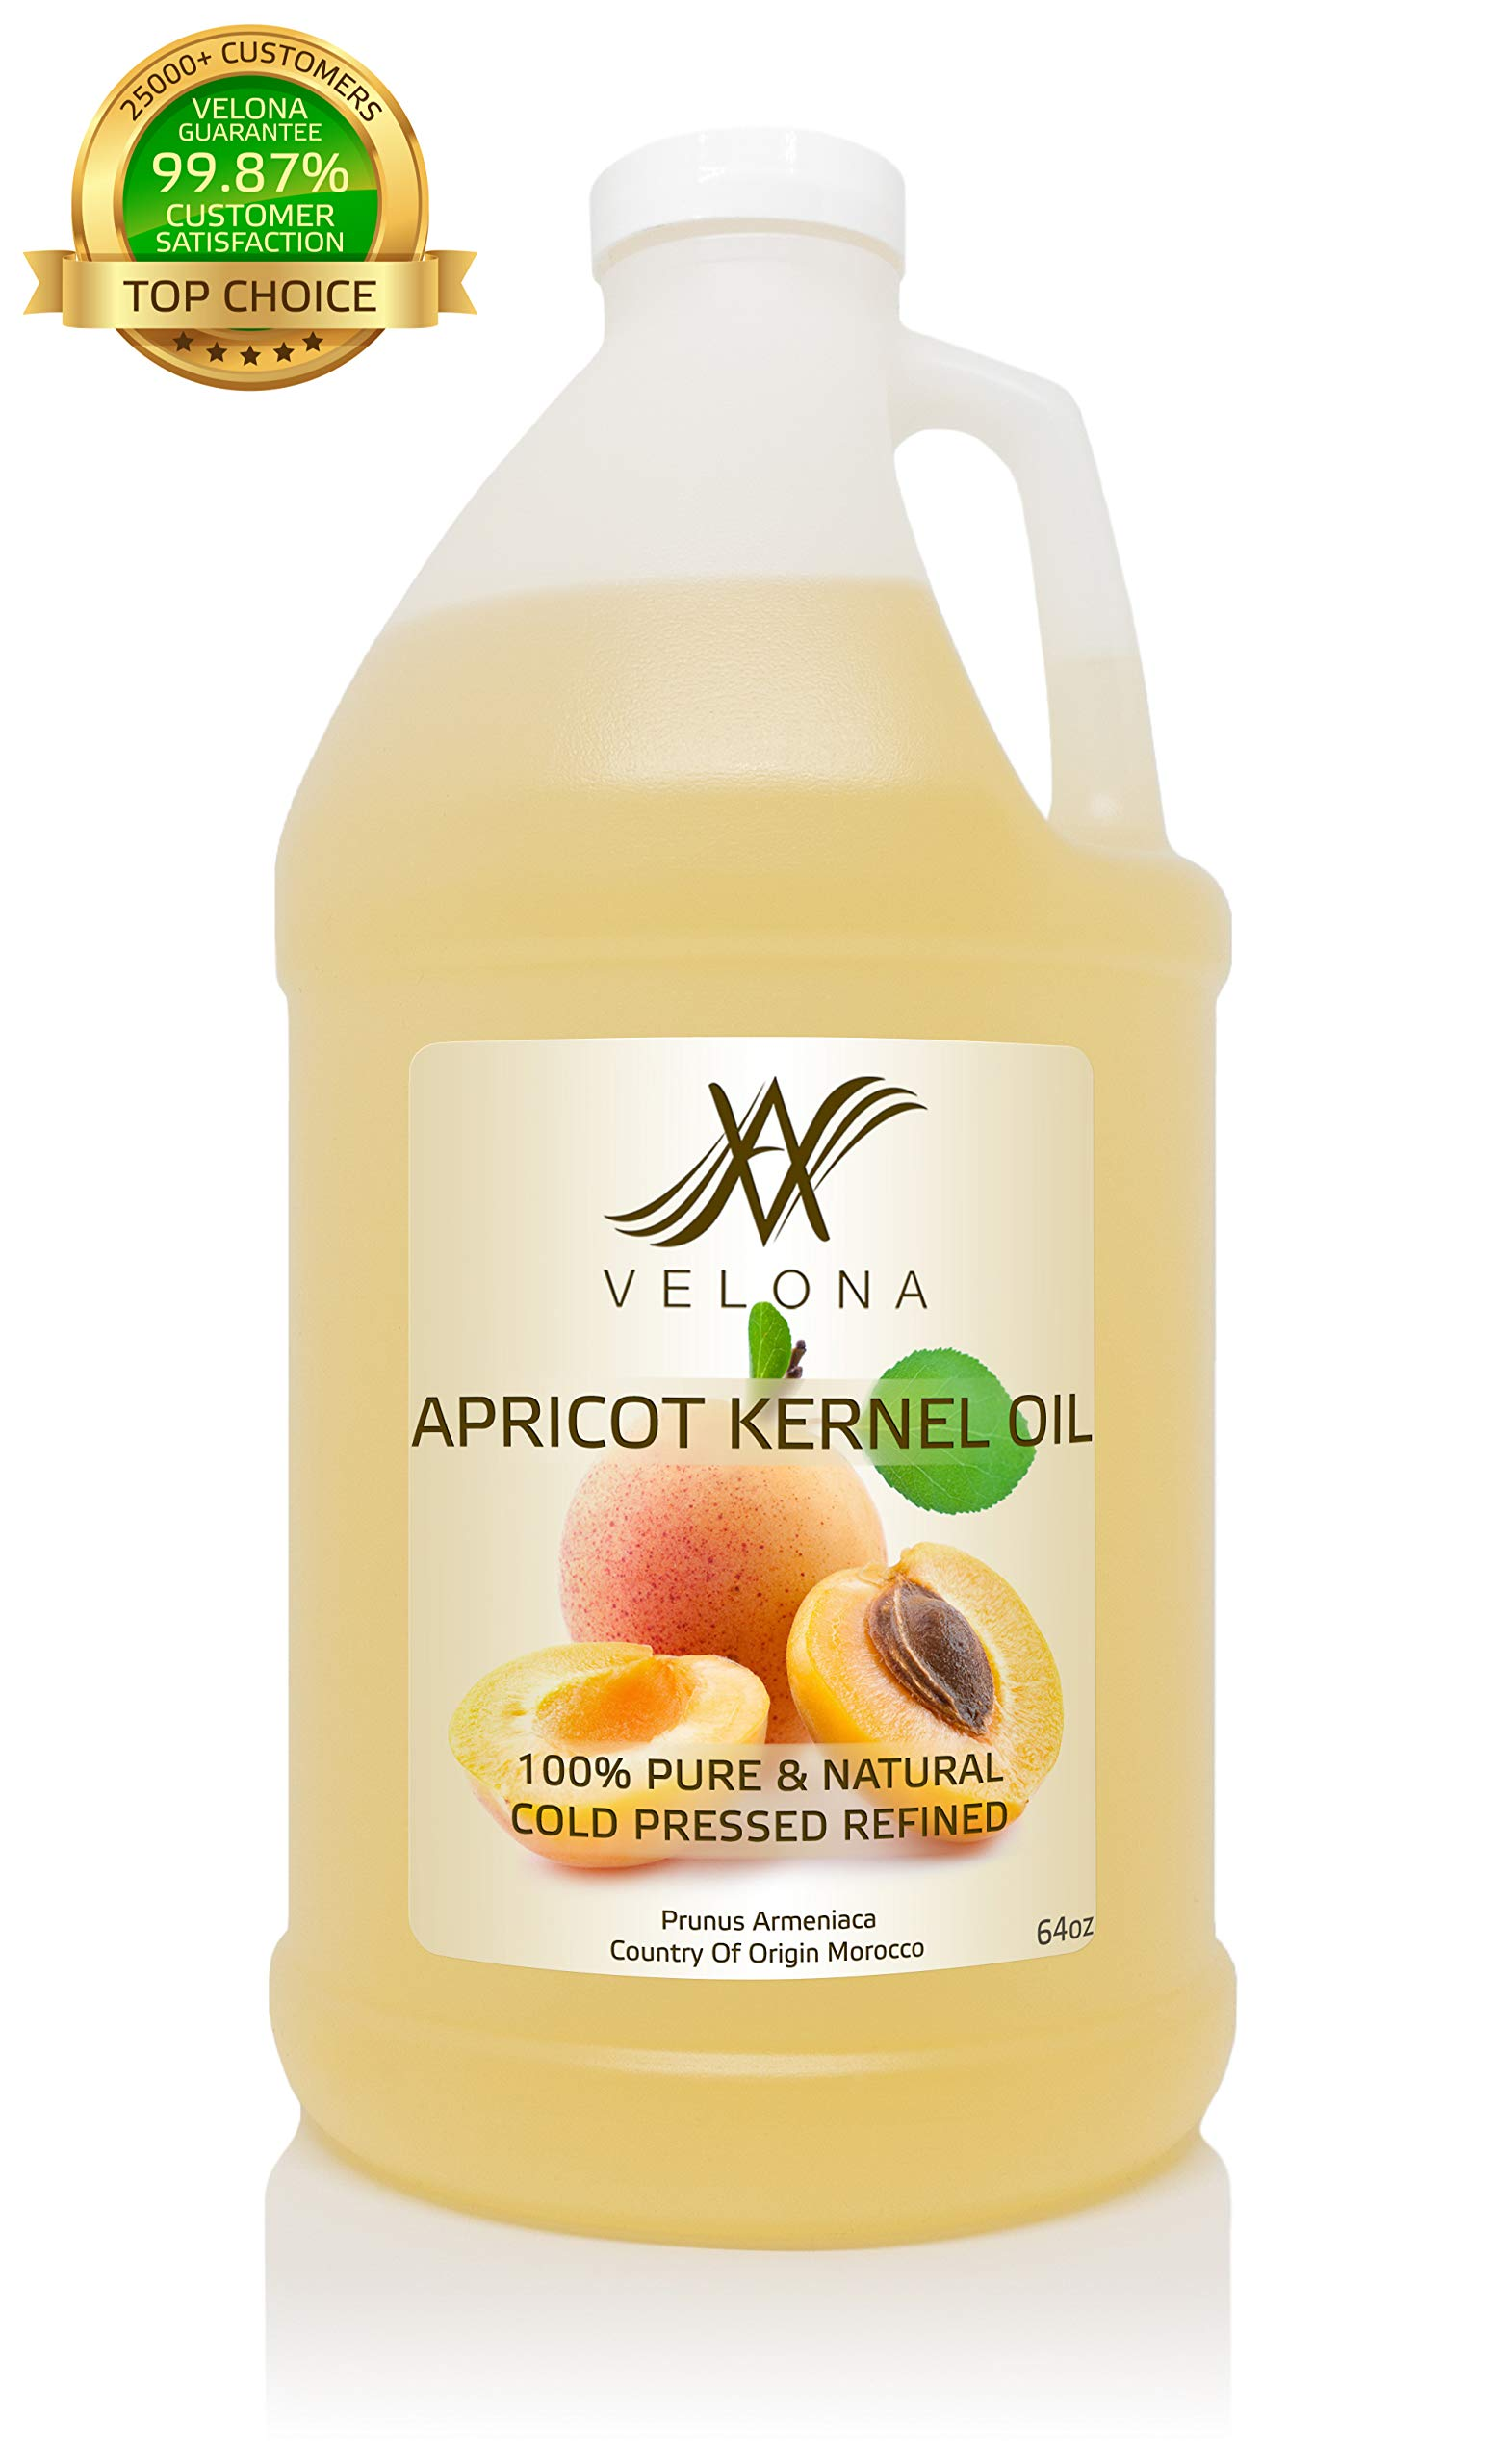 100% Organic Apricot Kernel Oil by Velona | All Natural Oil for Soap Making, Massage, Hair, Body, Skin & Face Care| Refined, Cold Pressed | Size: 64 oz by velona